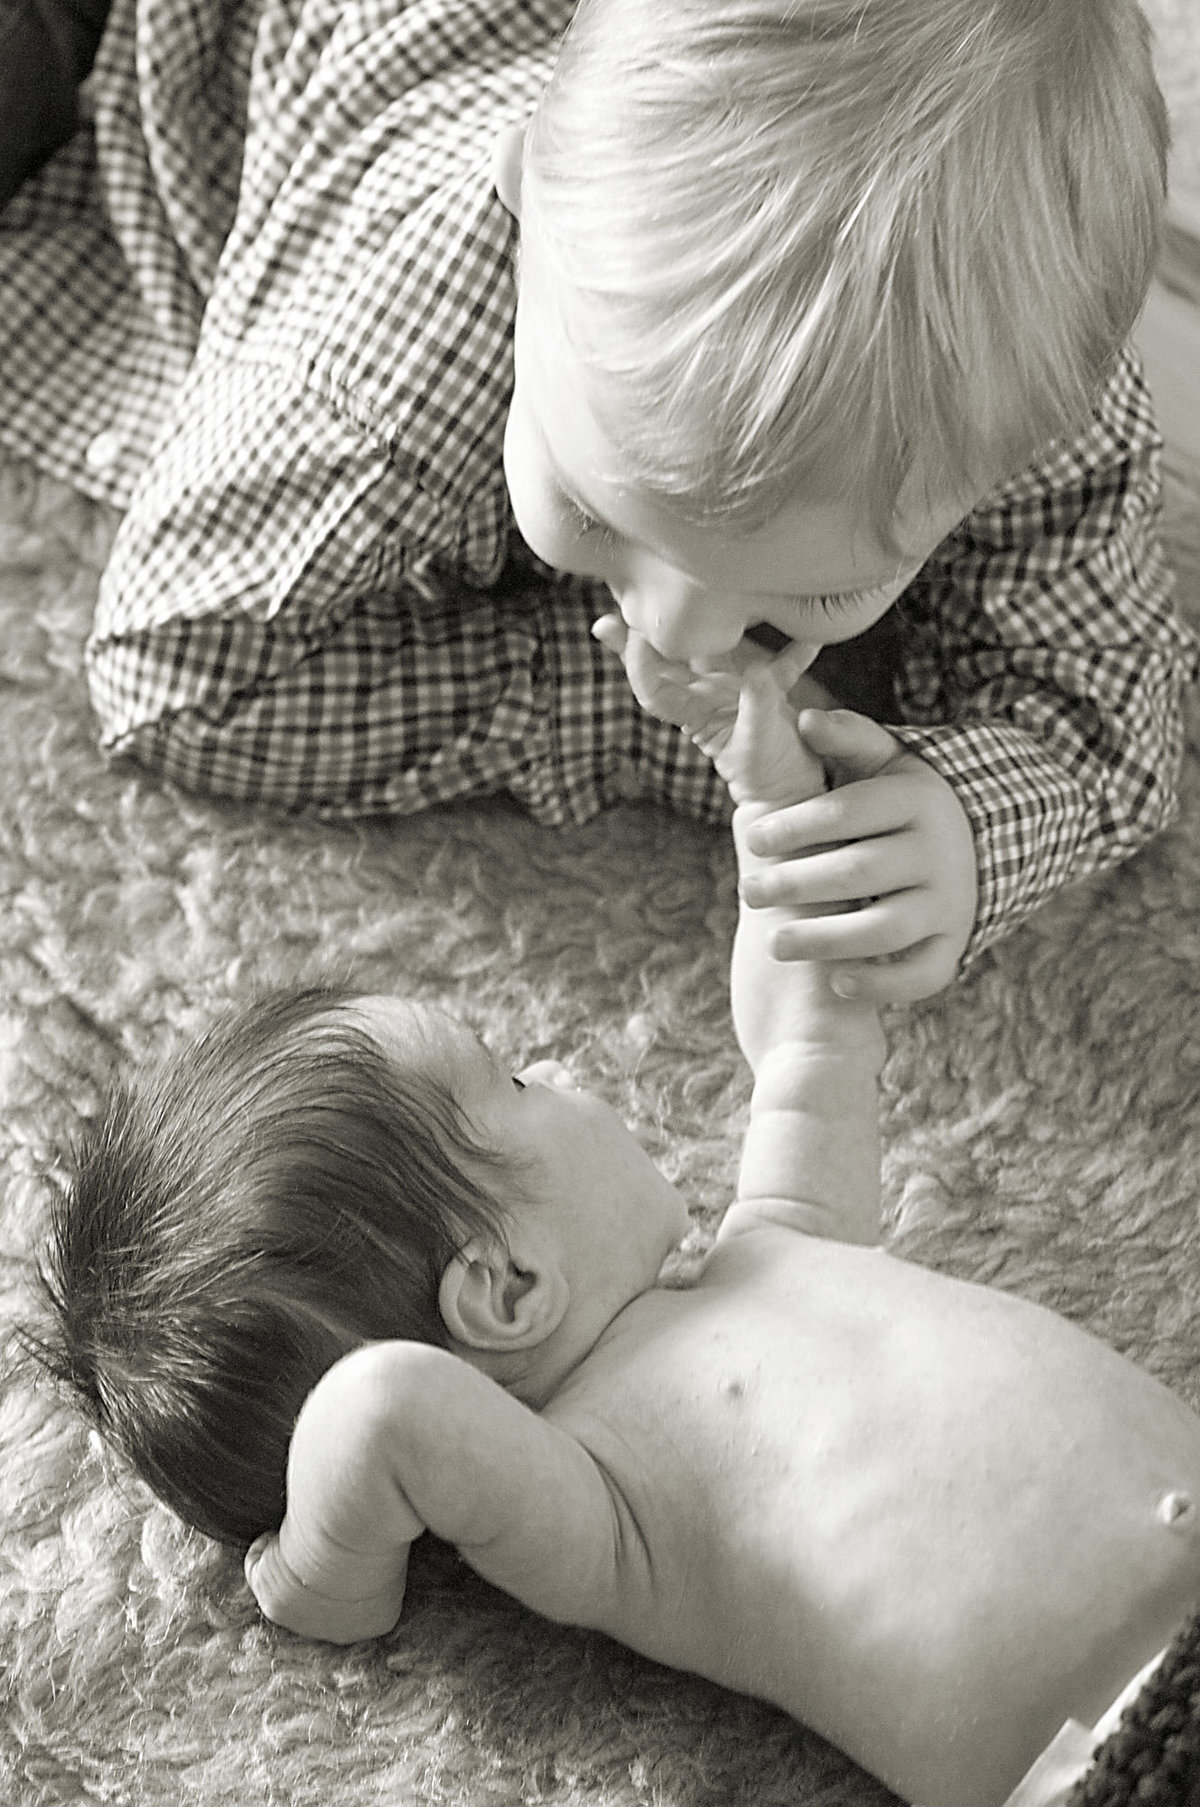 Touching sibling newborn photoshoot | One Shot Beyond Photography